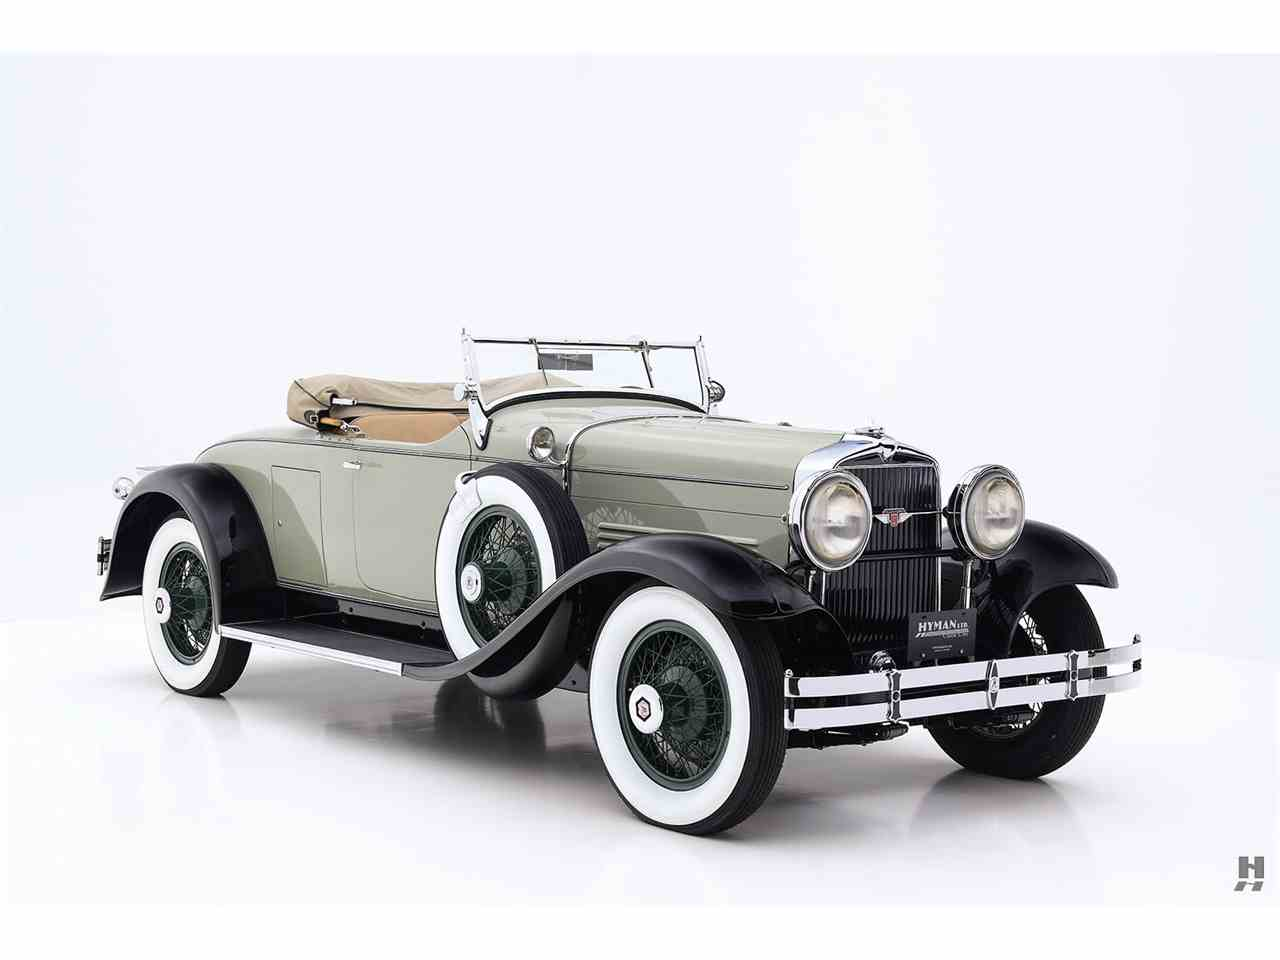 Large Picture of Classic '29 Stutz Blackhawk located in Saint Louis Missouri - $137,500.00 Offered by Hyman Ltd. Classic Cars - JKFP